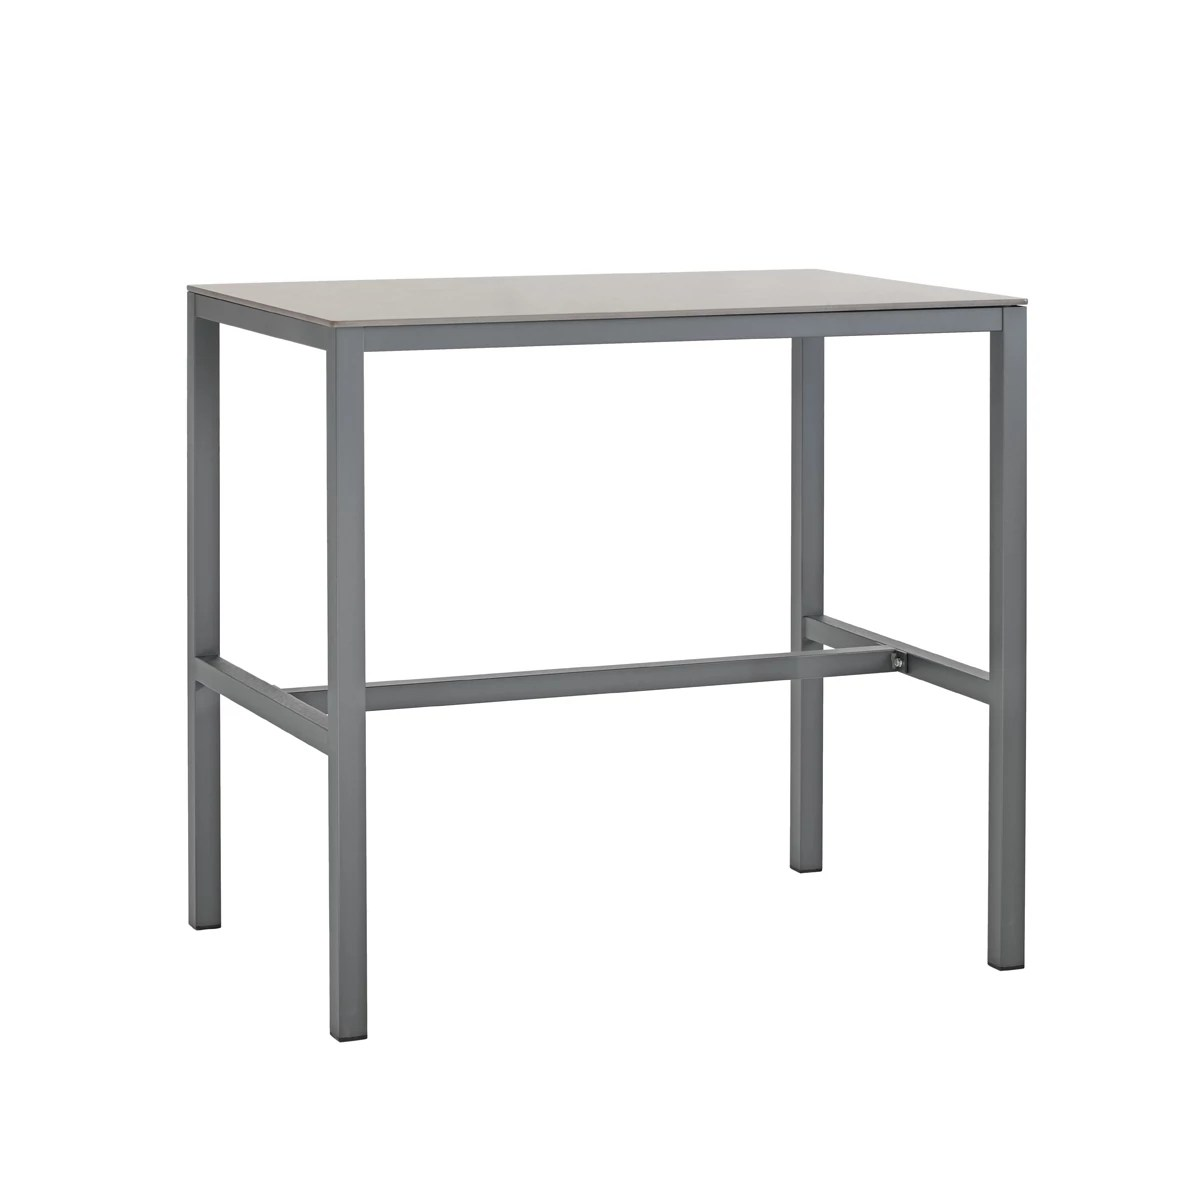 Table De Jardin Moderne Table De Jardin Moderne Tendance London Isimar